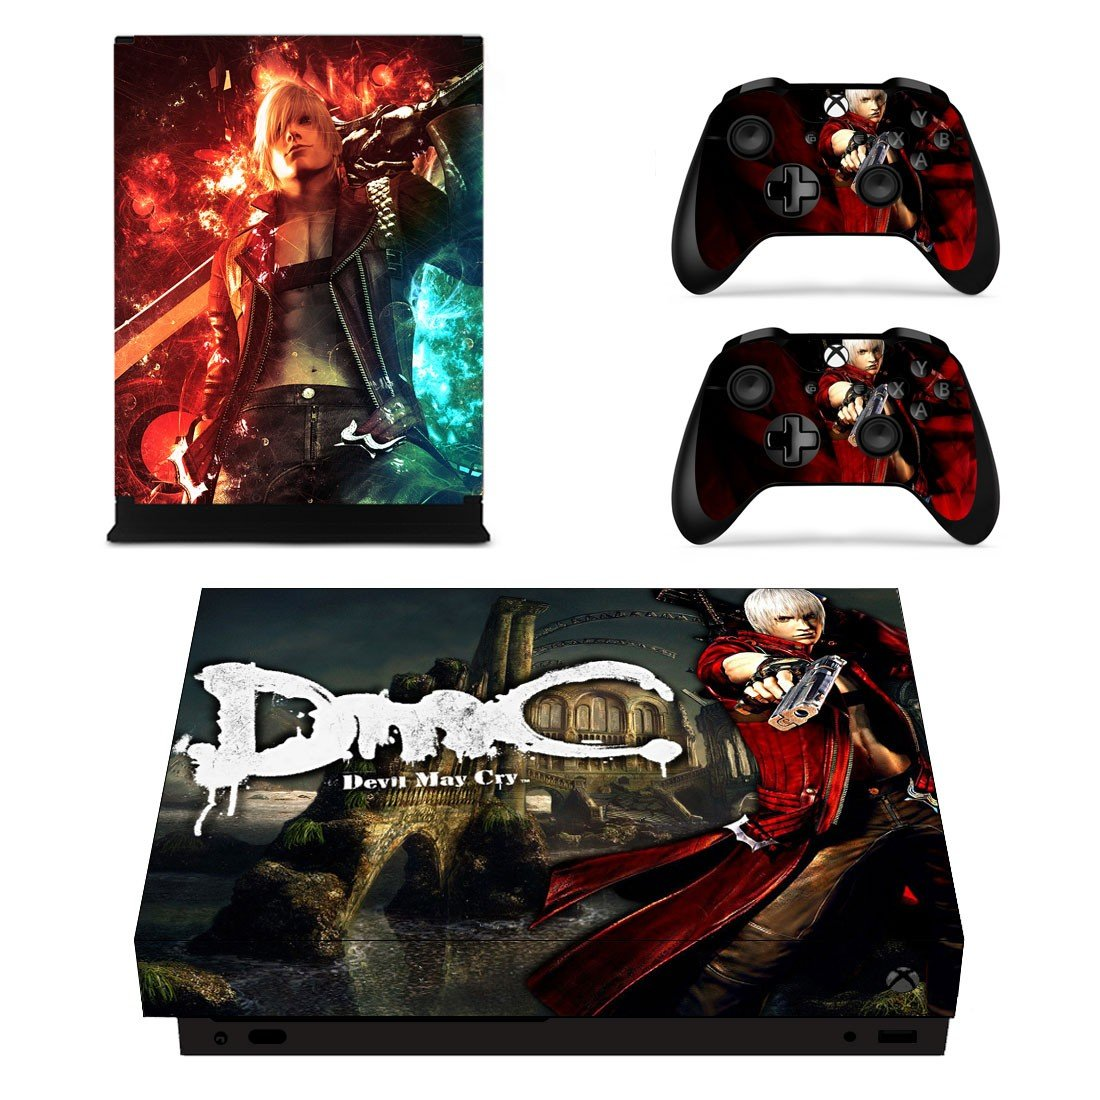 Devil May Cry decal skin sticker for Xbox One X console and controllers